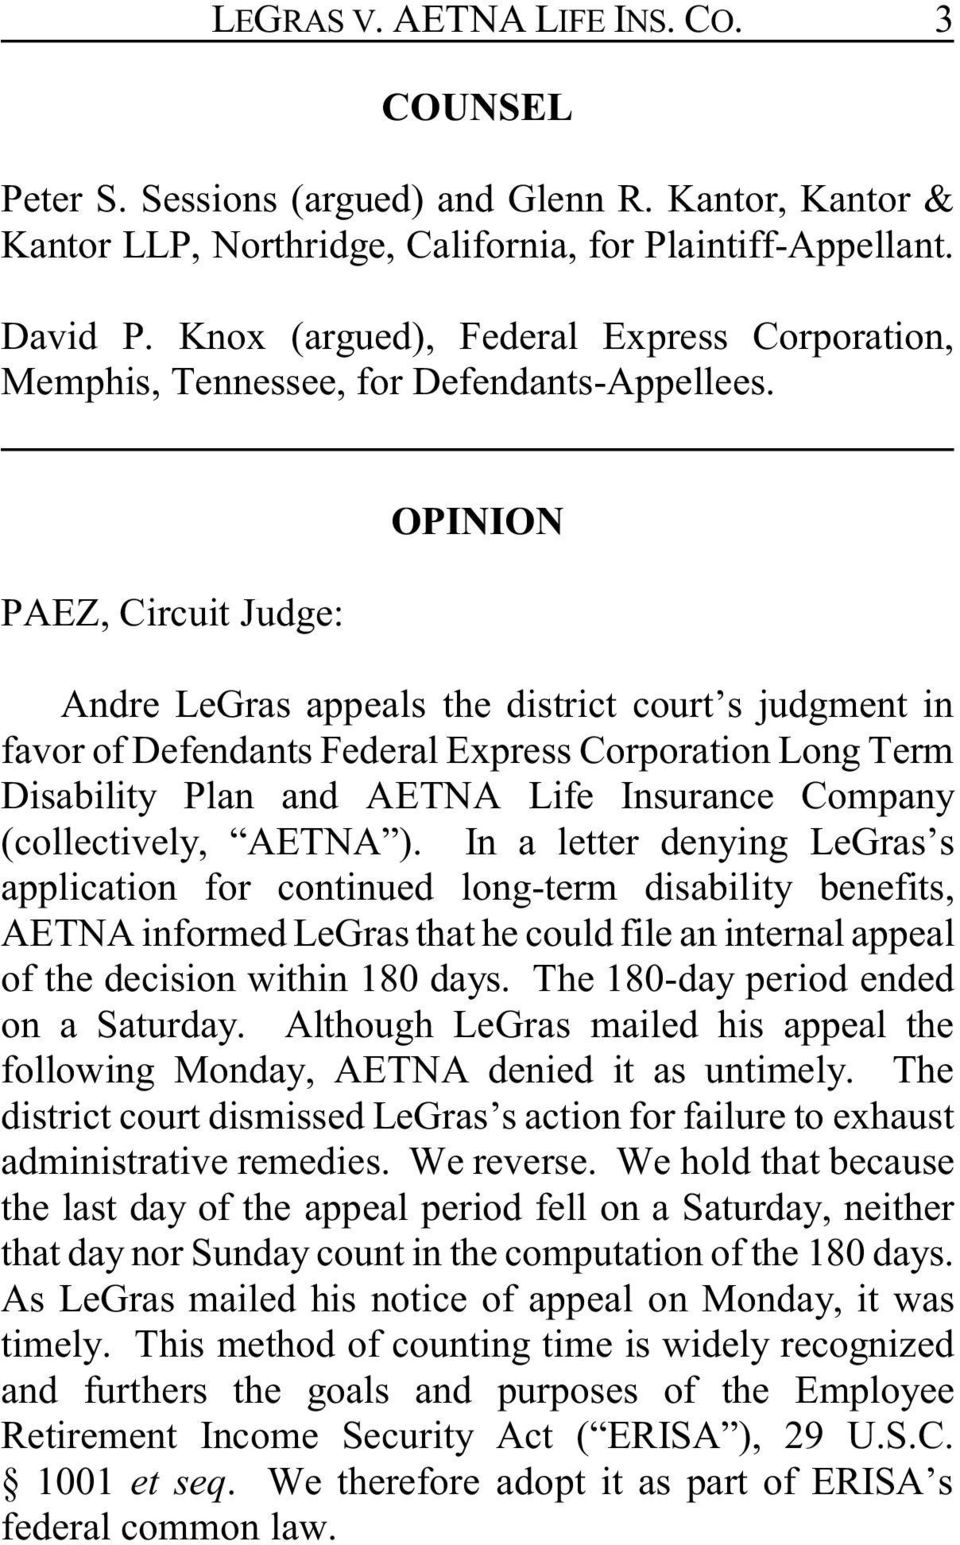 PAEZ, Circuit Judge: OPINION Andre LeGras appeals the district court s judgment in favor of Defendants Federal Express Corporation Long Term Disability Plan and AETNA Life Insurance Company